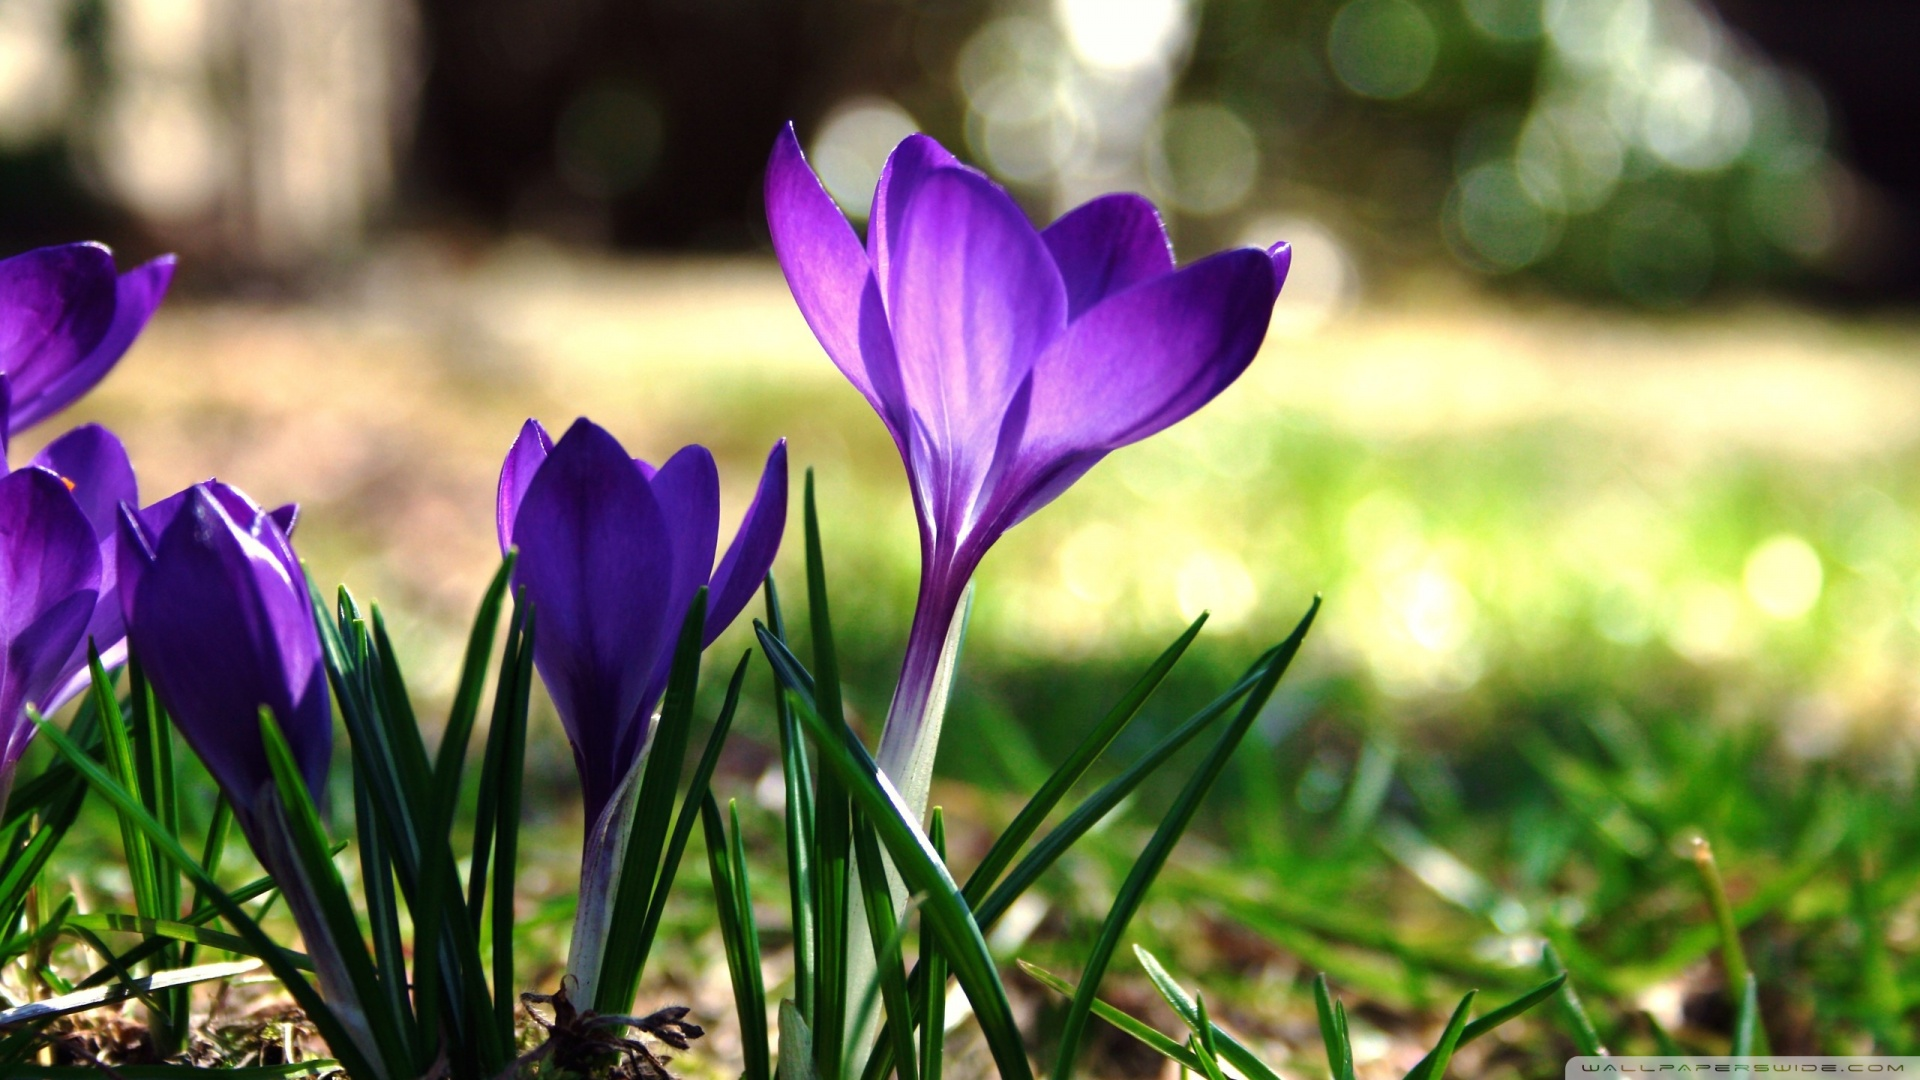 Crocuses Wallpaper HD